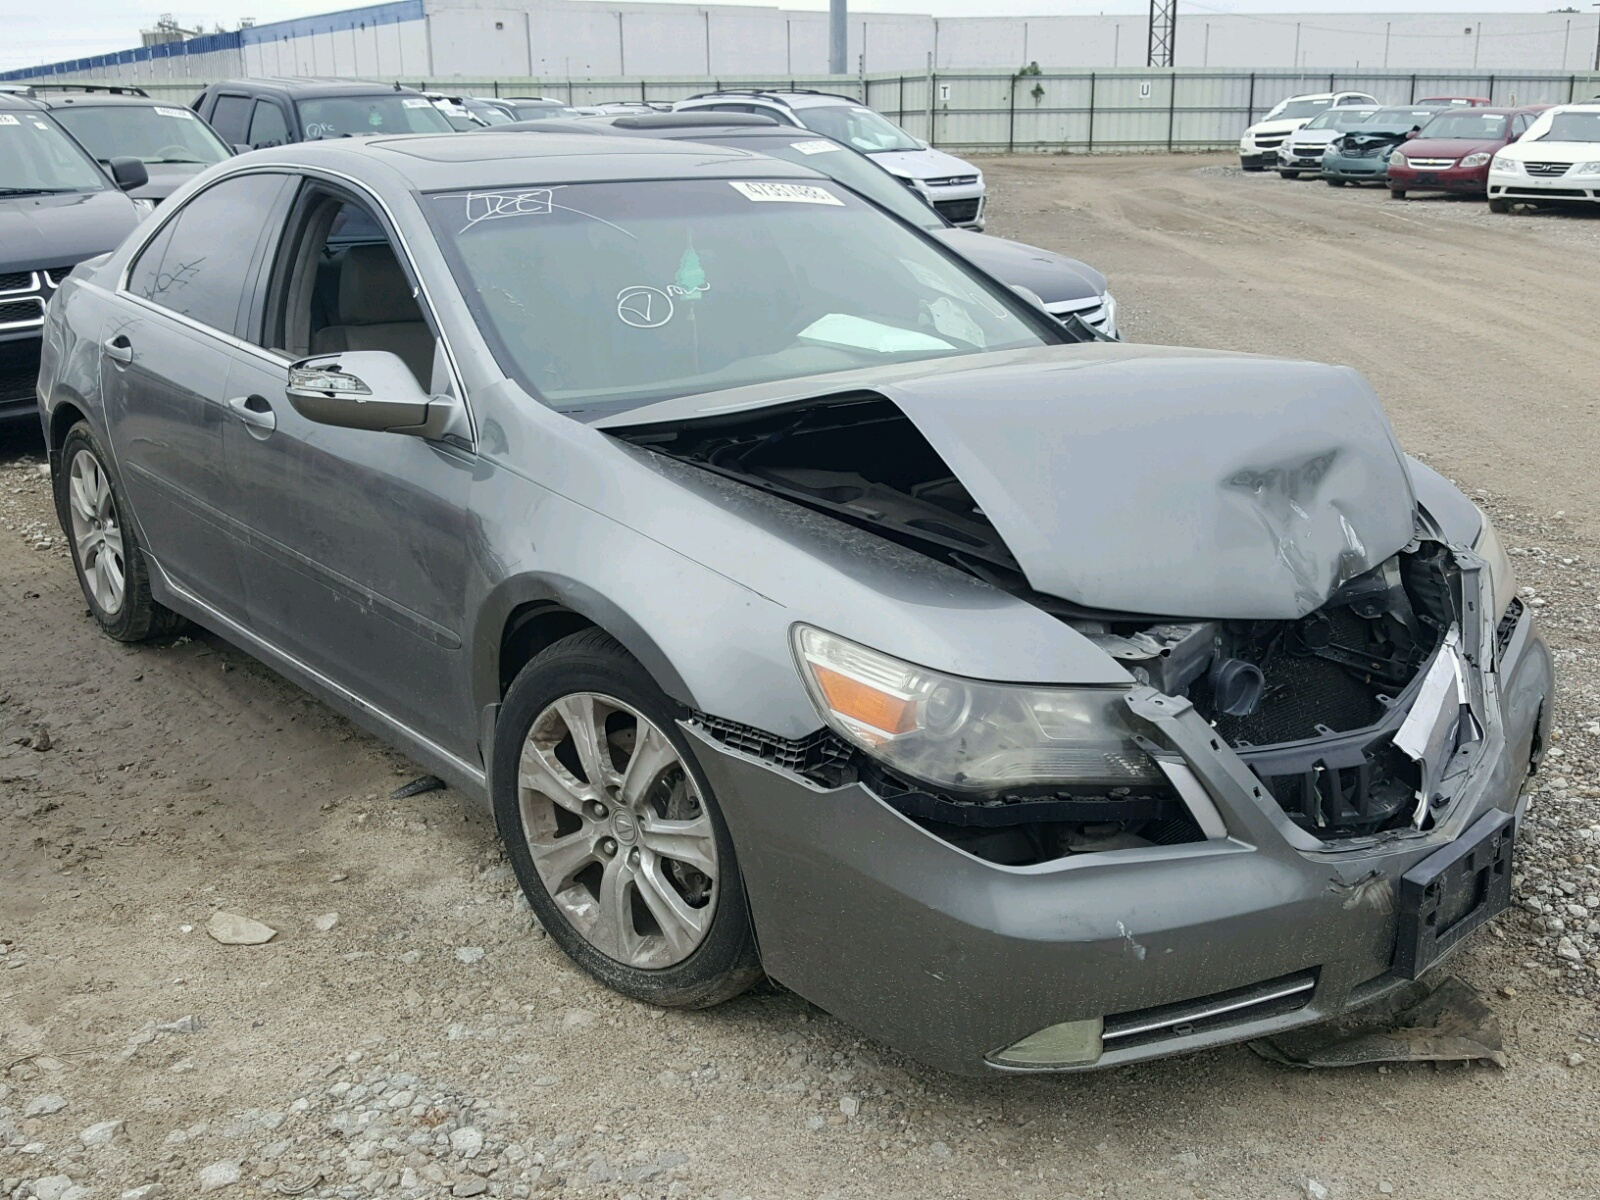 Salvage 2009 Acura RL for sale